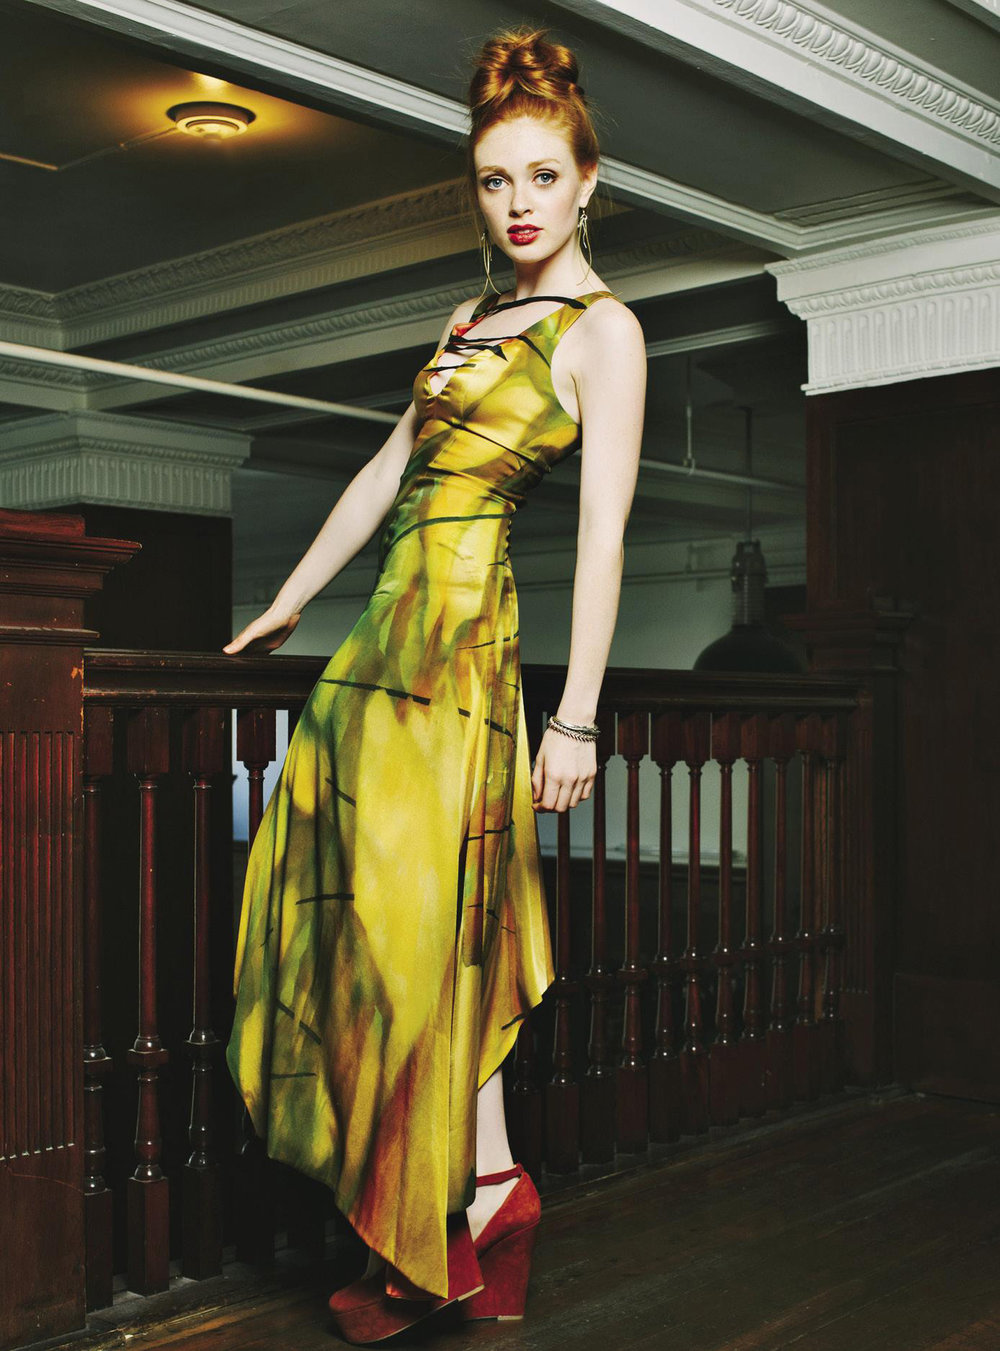 Photo taken by Lavenda Memory for About Face Magazine MYTHAUS hand painted silk couture dress collaboration with artist Robb Kramer